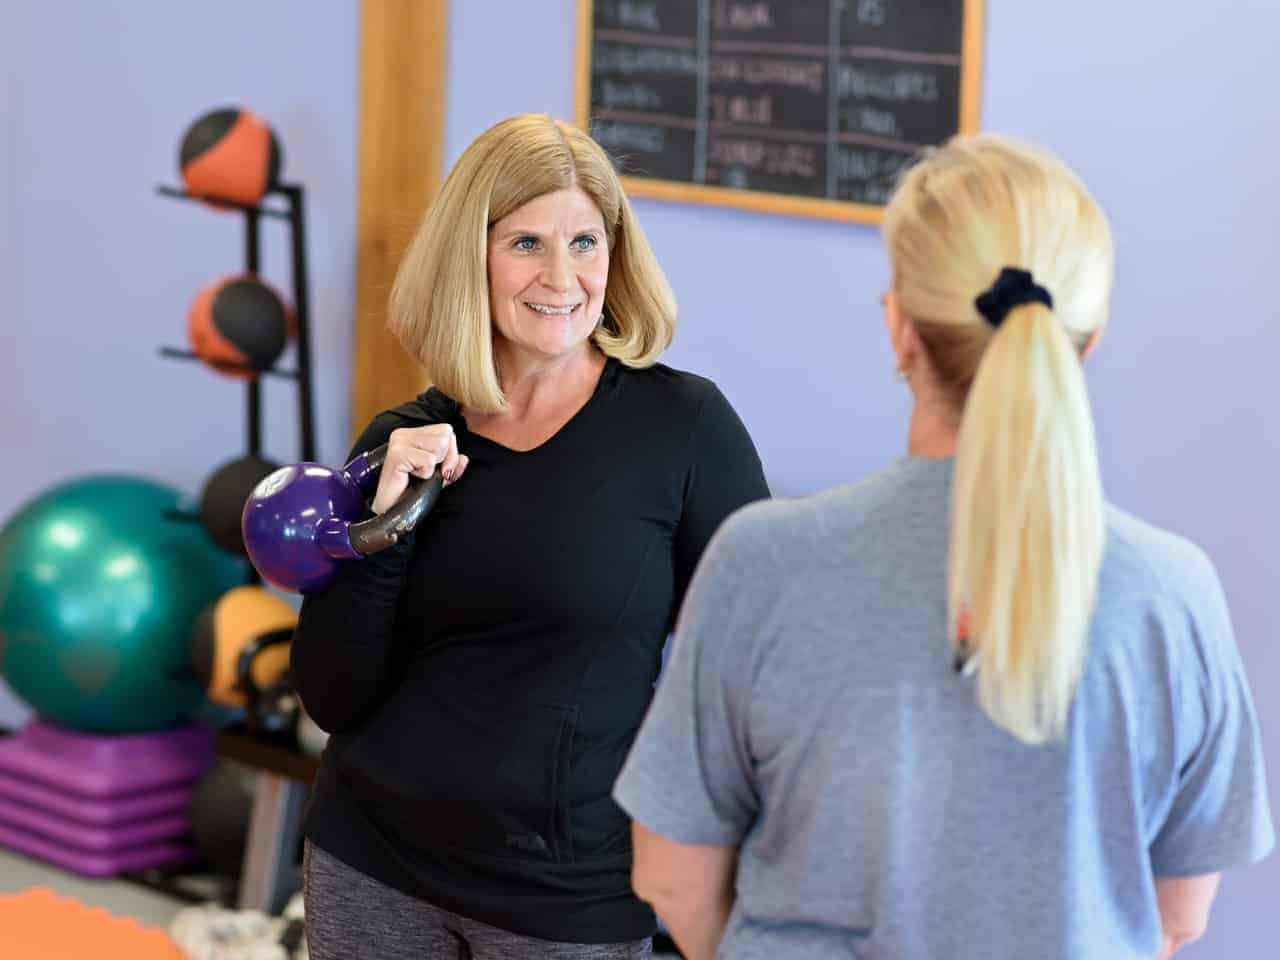 Personal Trainer demonstrates proper technique for holding a kettlebell.